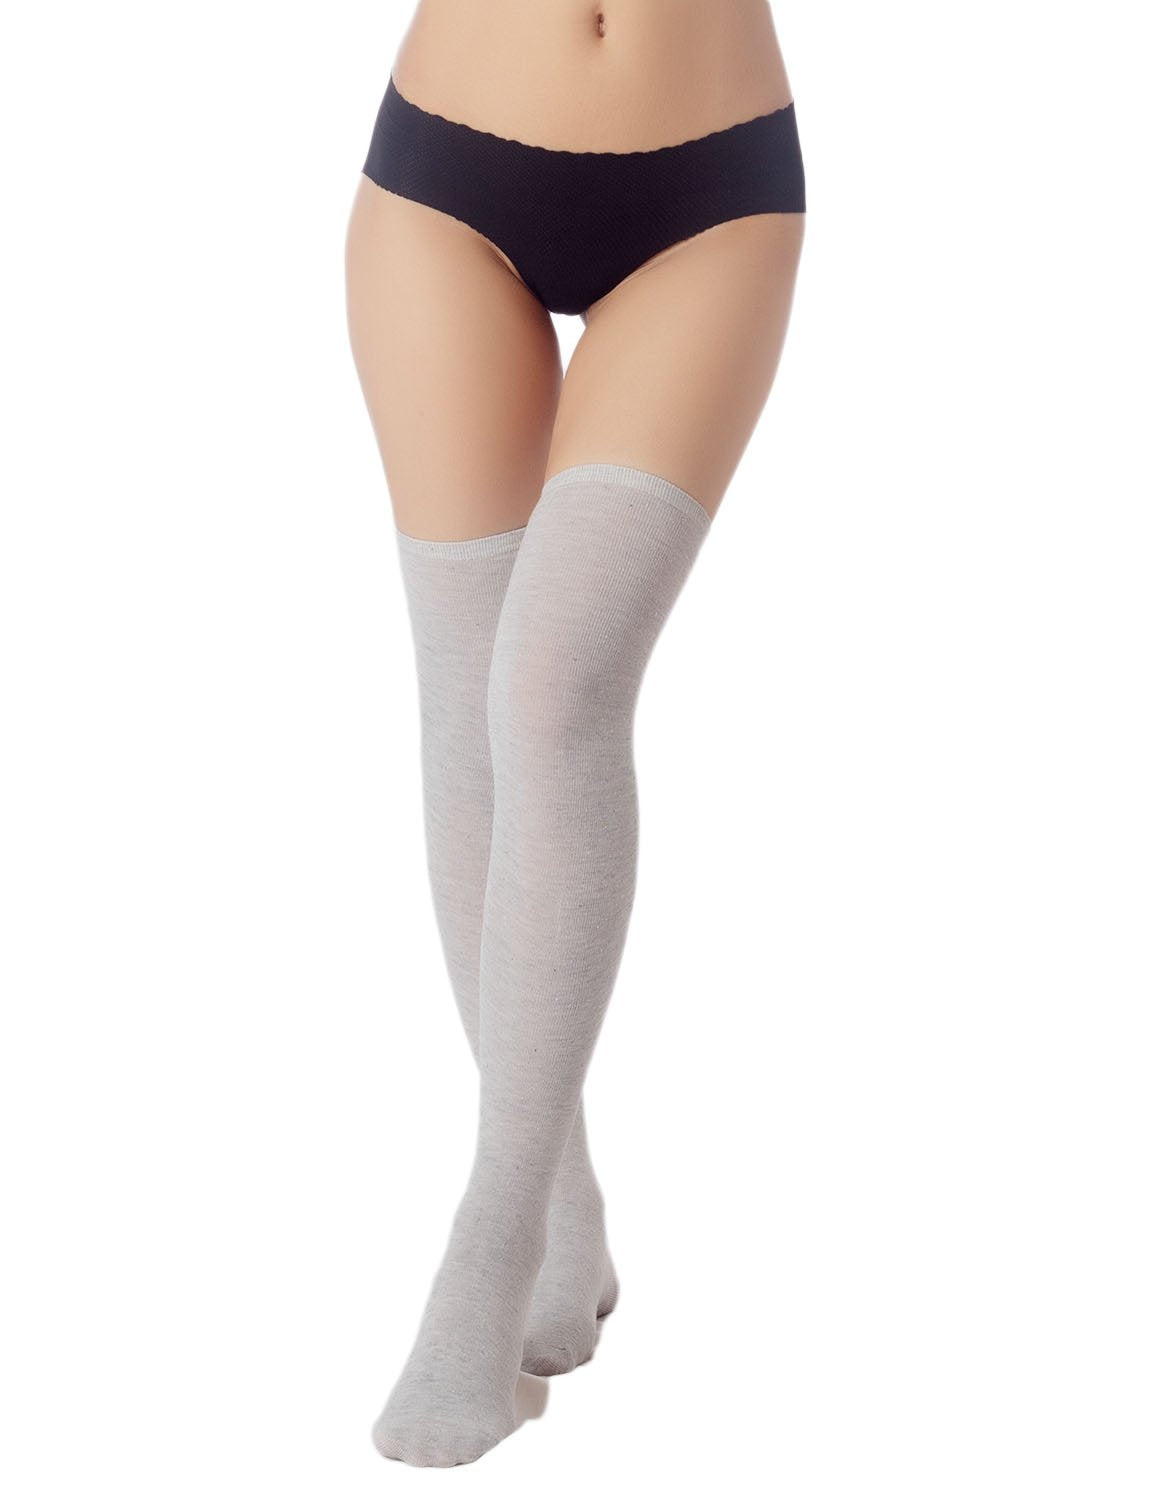 Women's Navy Stripes Sports Football Style Cute Hold-Up Thigh High Socks, Size: One Size, Light Grey